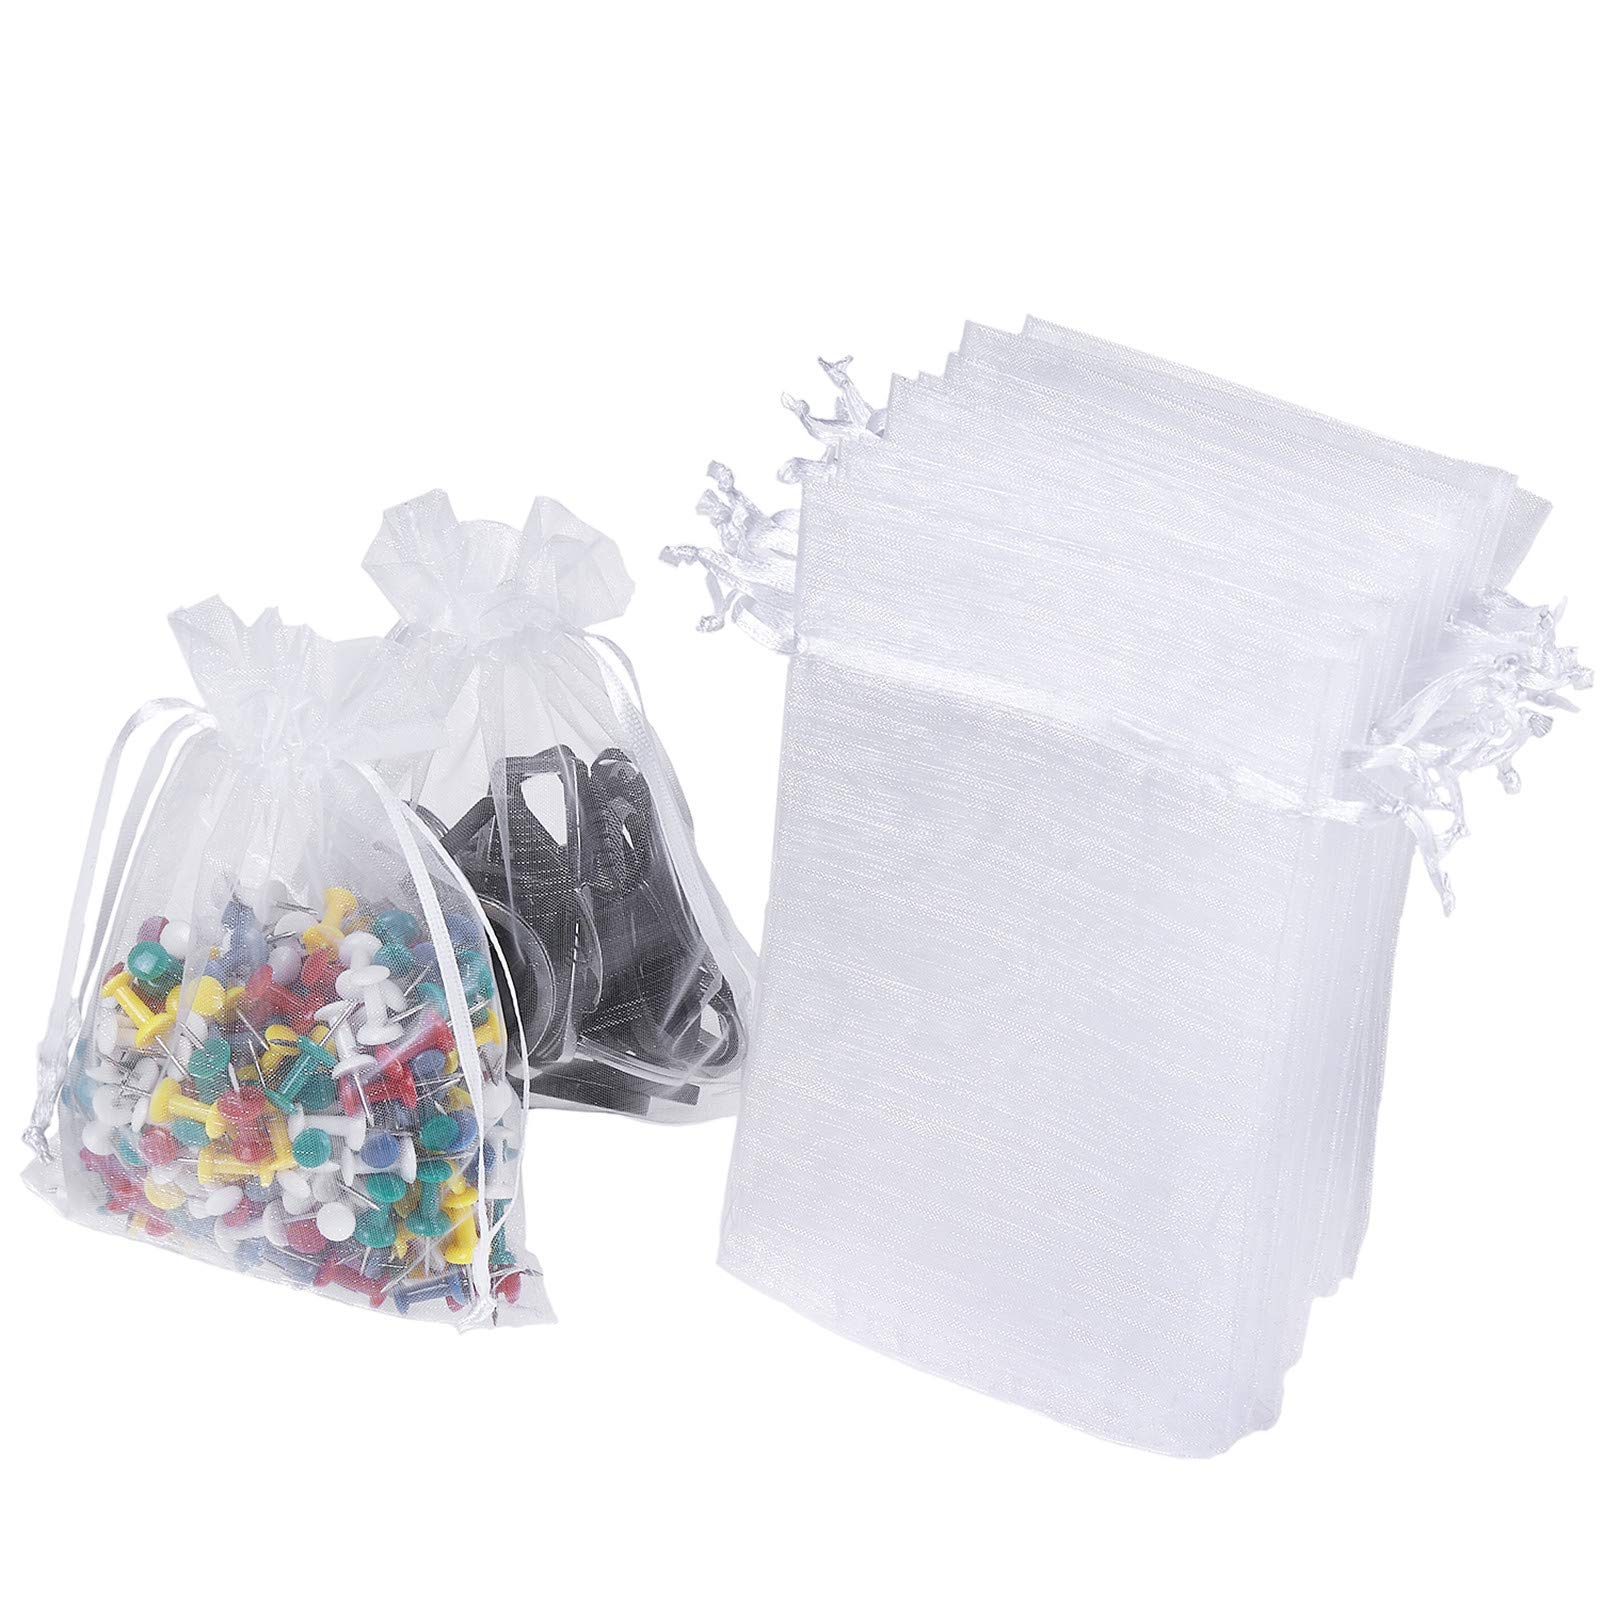 """WenTao 100PCS 4x6"""" (10x15cm) Sheer Organza Bags, White Wedding Favor Bags With Drawstring, Premium Jewelry Pouches Party Festival Gift Bags Candy Bags"""